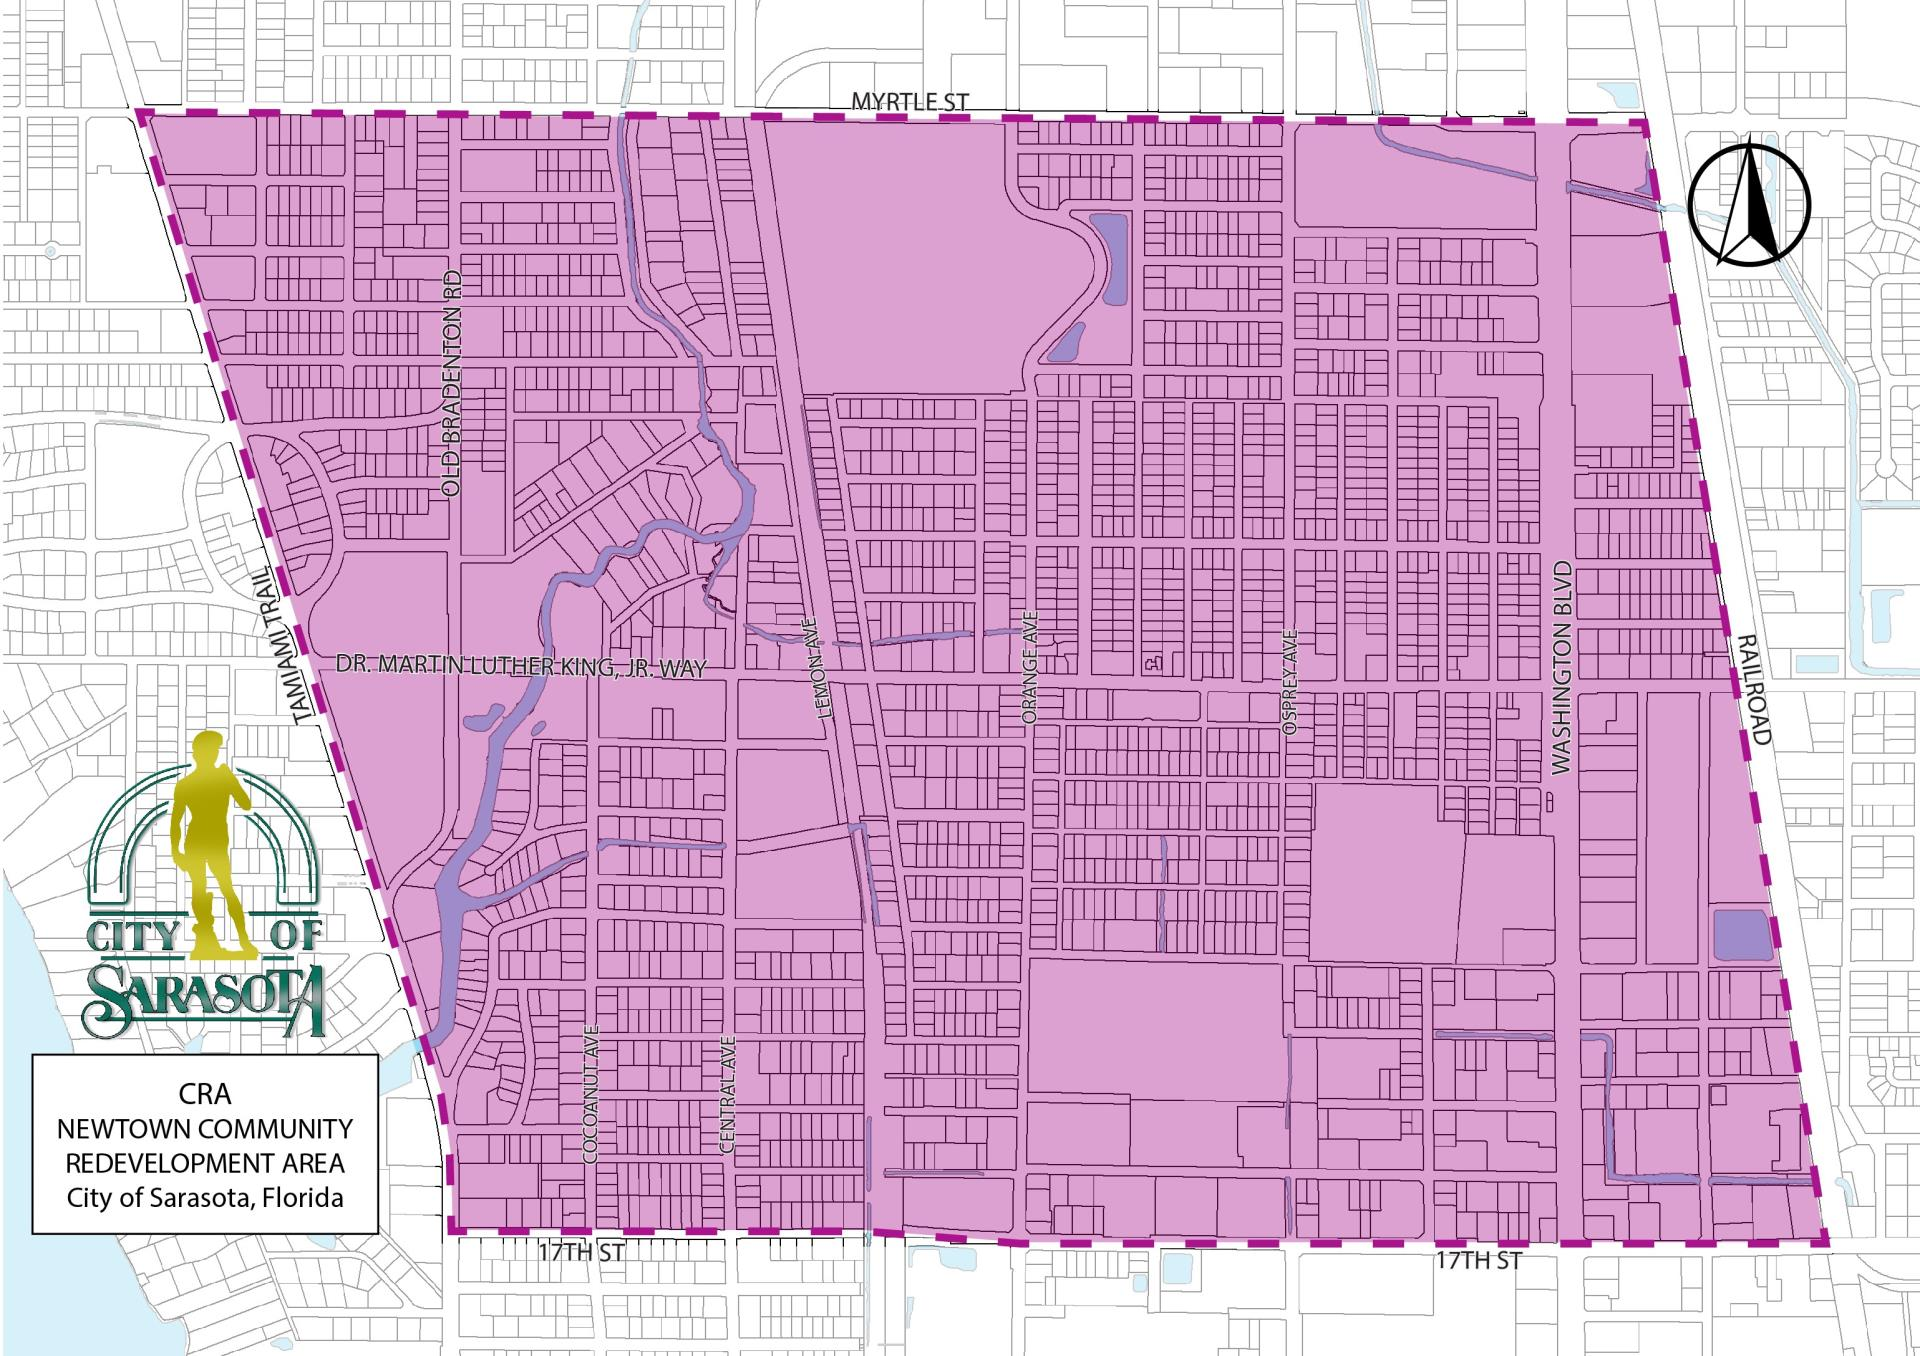 Map Showing the boundaries of the Newtown CRA which are 17th to Myrtle St and Tamiami Trail to Railroad Tracks east of 301